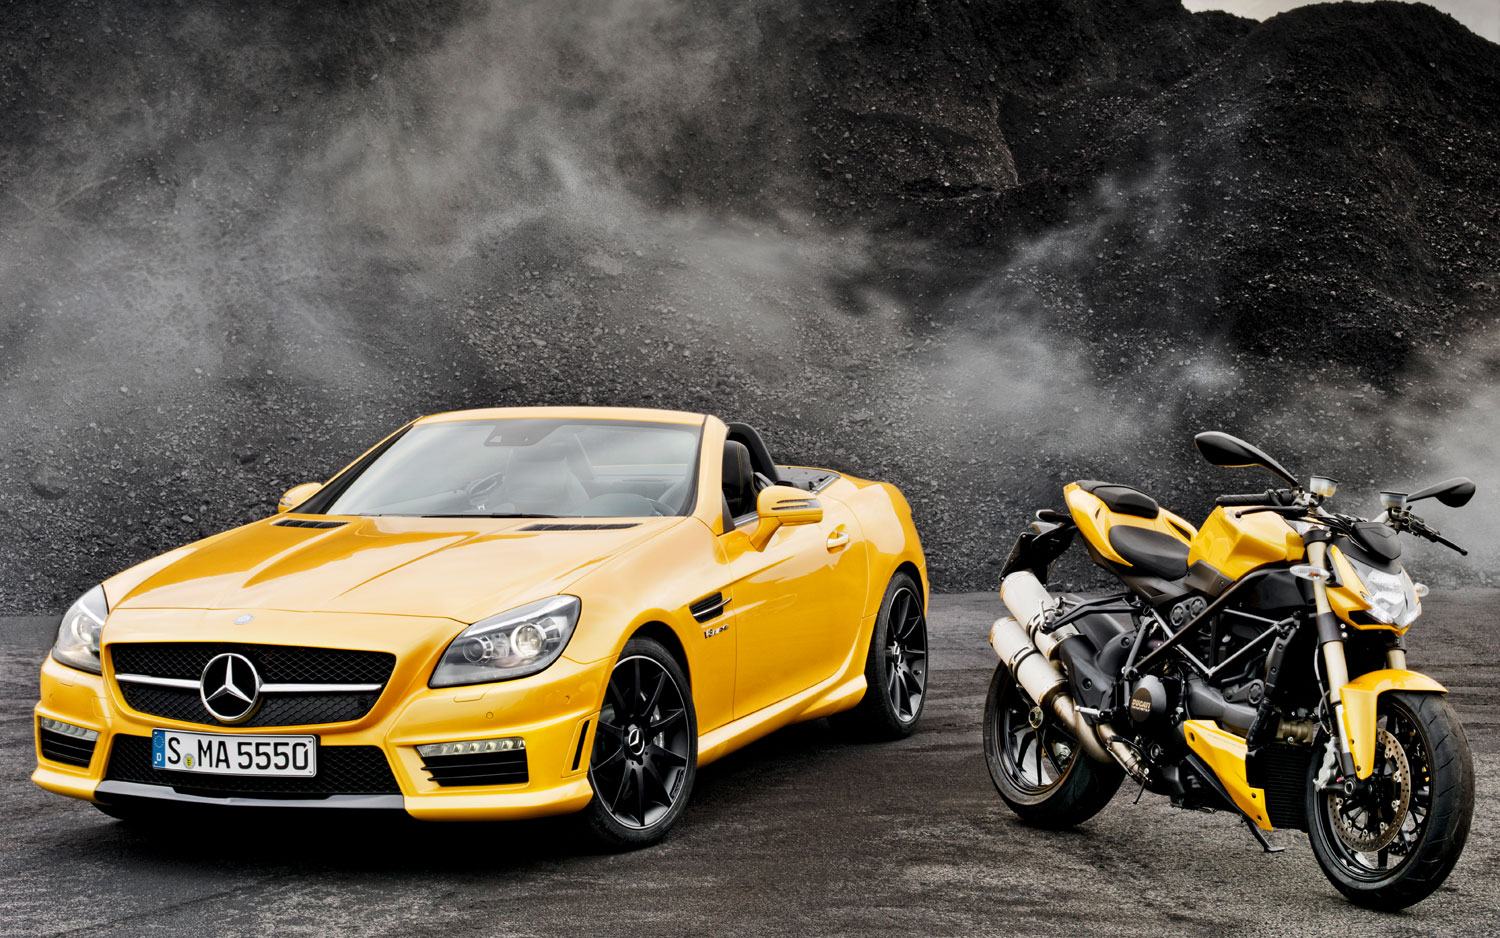 Color Matched Mercedes Benz Slk55 Amg Show Car Wears Ducati Yellow Paint Source Evan Mccausland